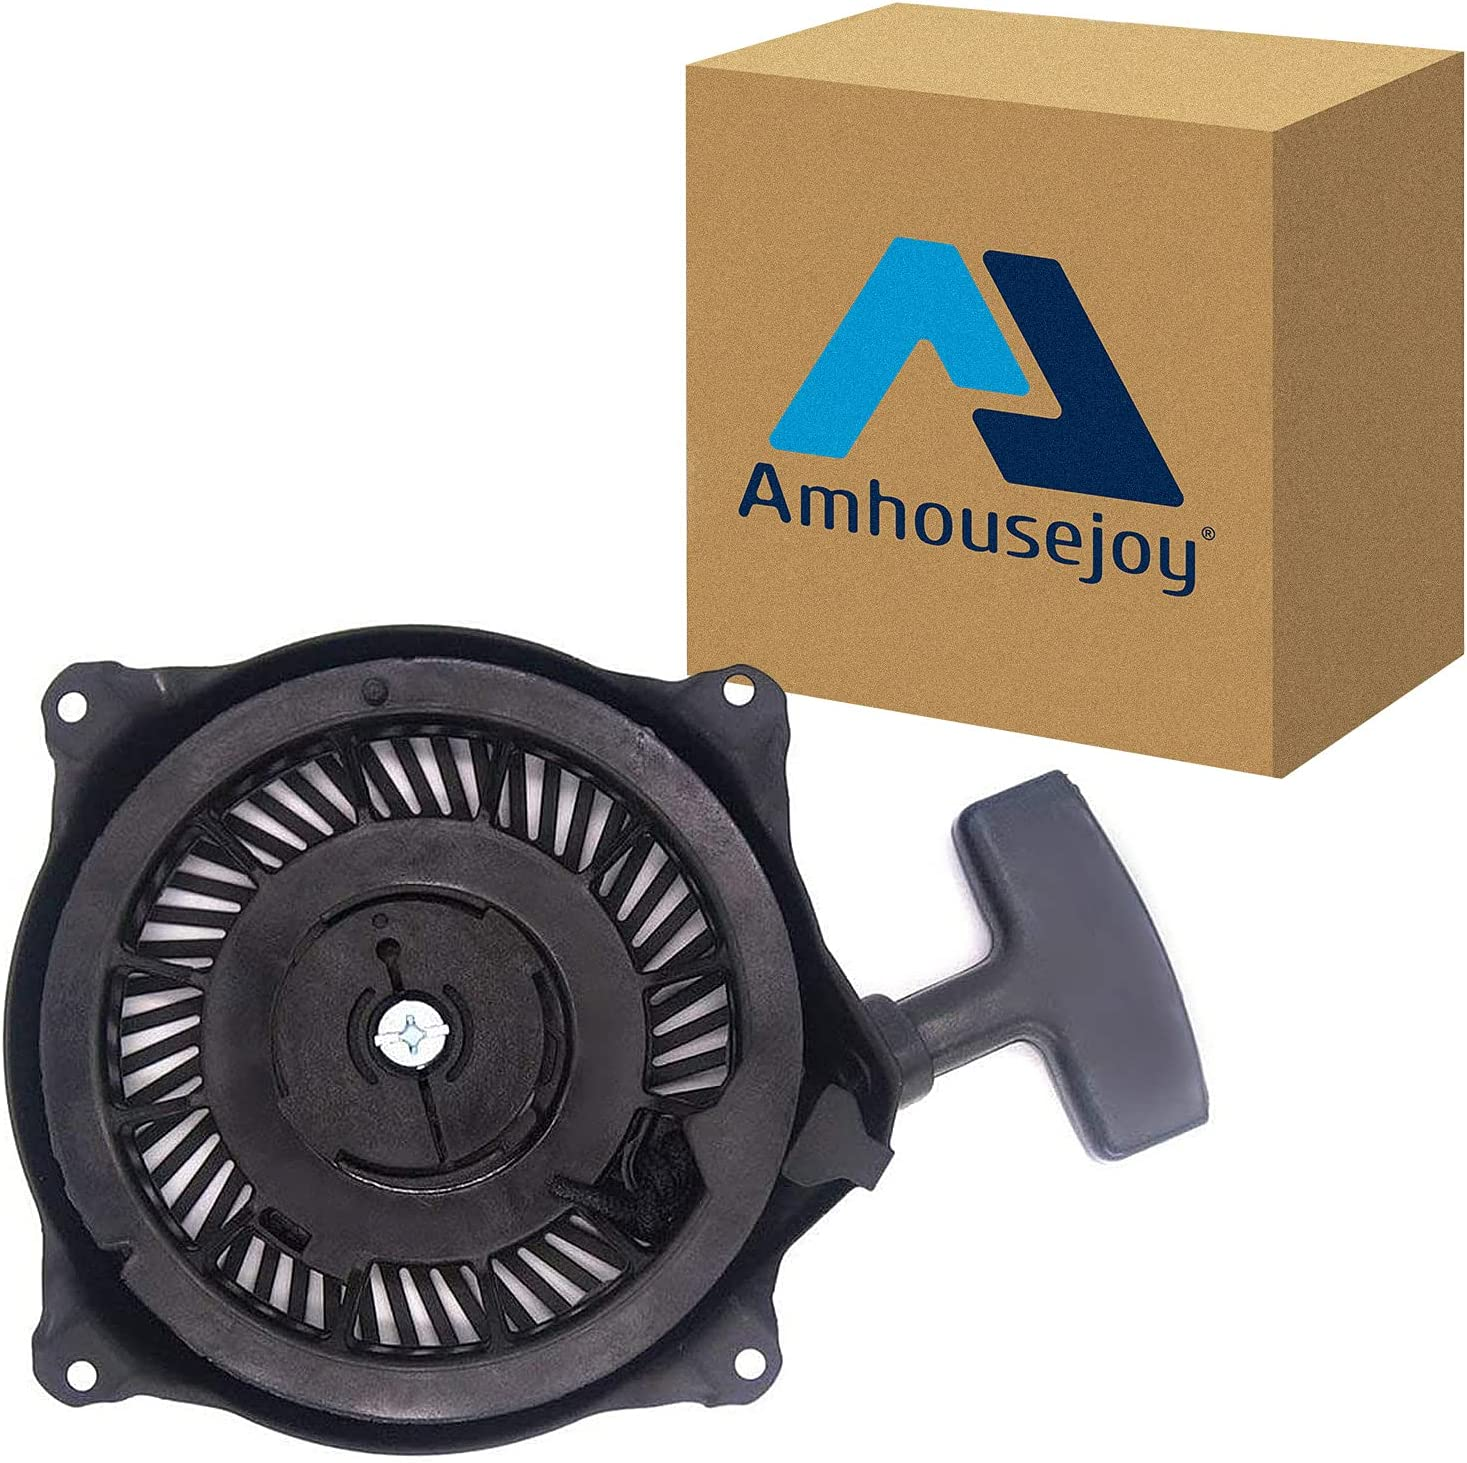 Long-awaited Amhousejoy Recoil Pull Starter Memphis Mall Fit Stratton for Briggs 135202